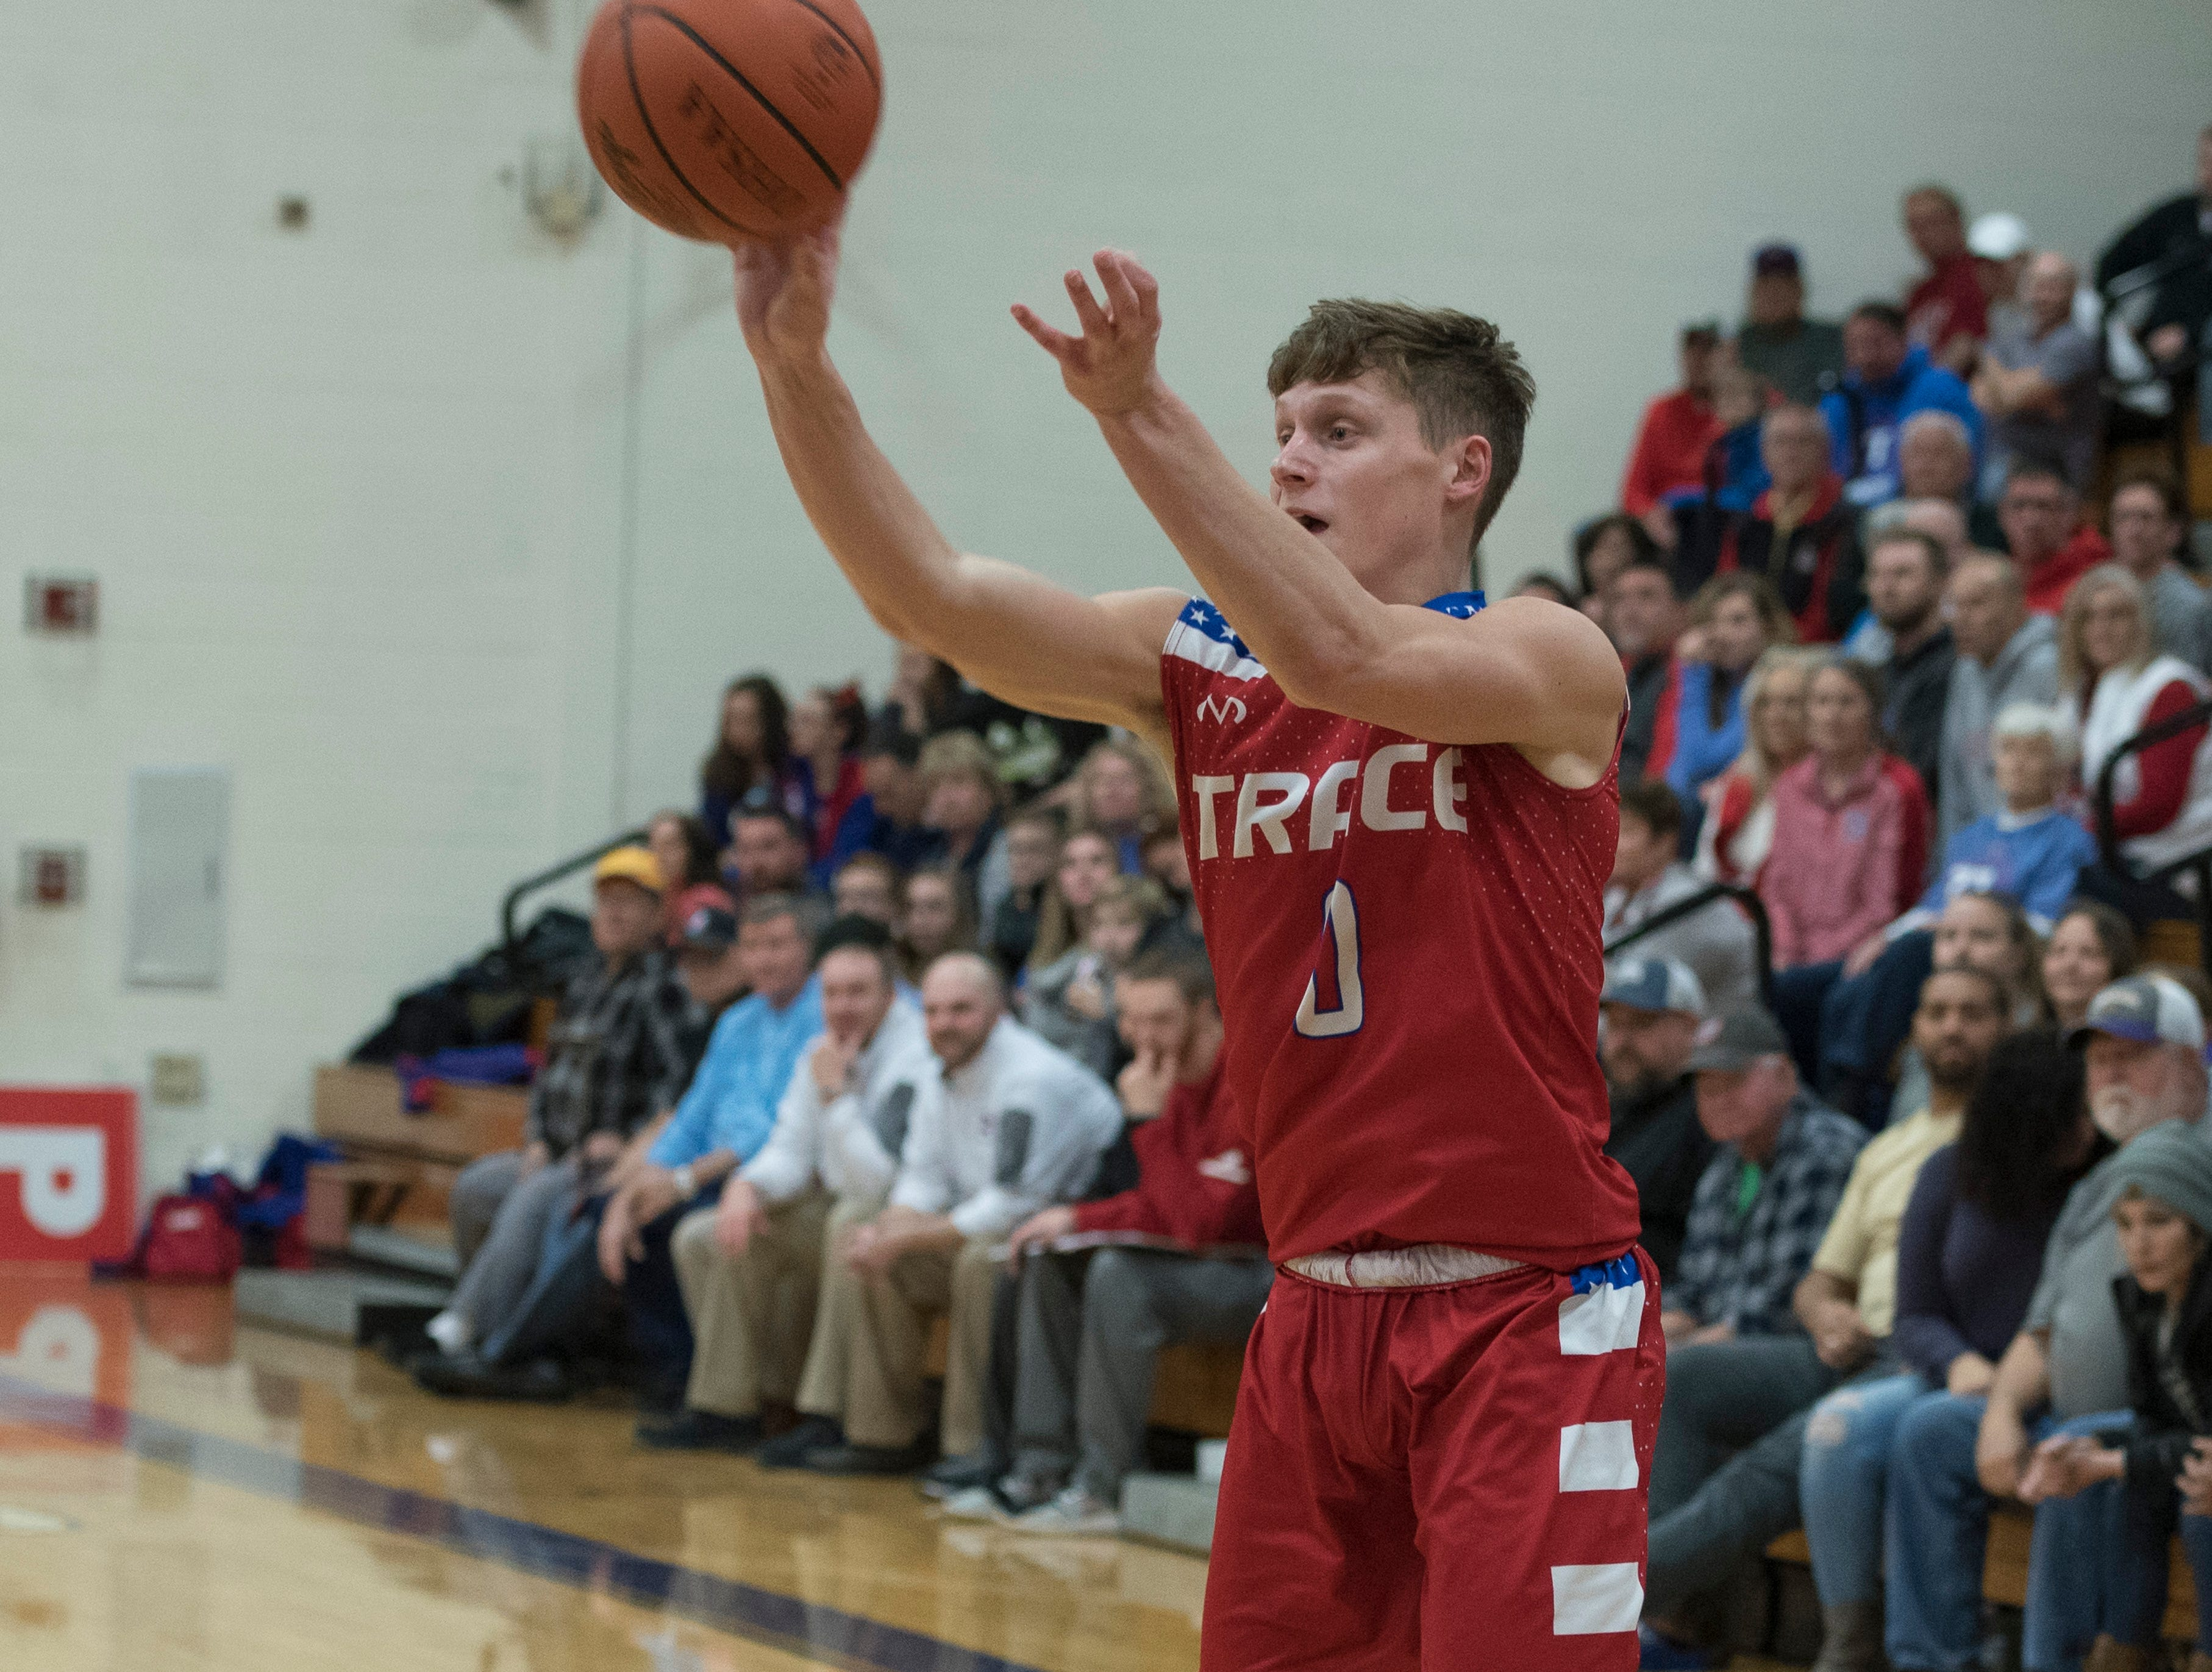 Junior Colby Swain takes a jump shot to score for Zane Trace Wednesday night at McClain High School. McClain defeated Zane Trace 61-60.